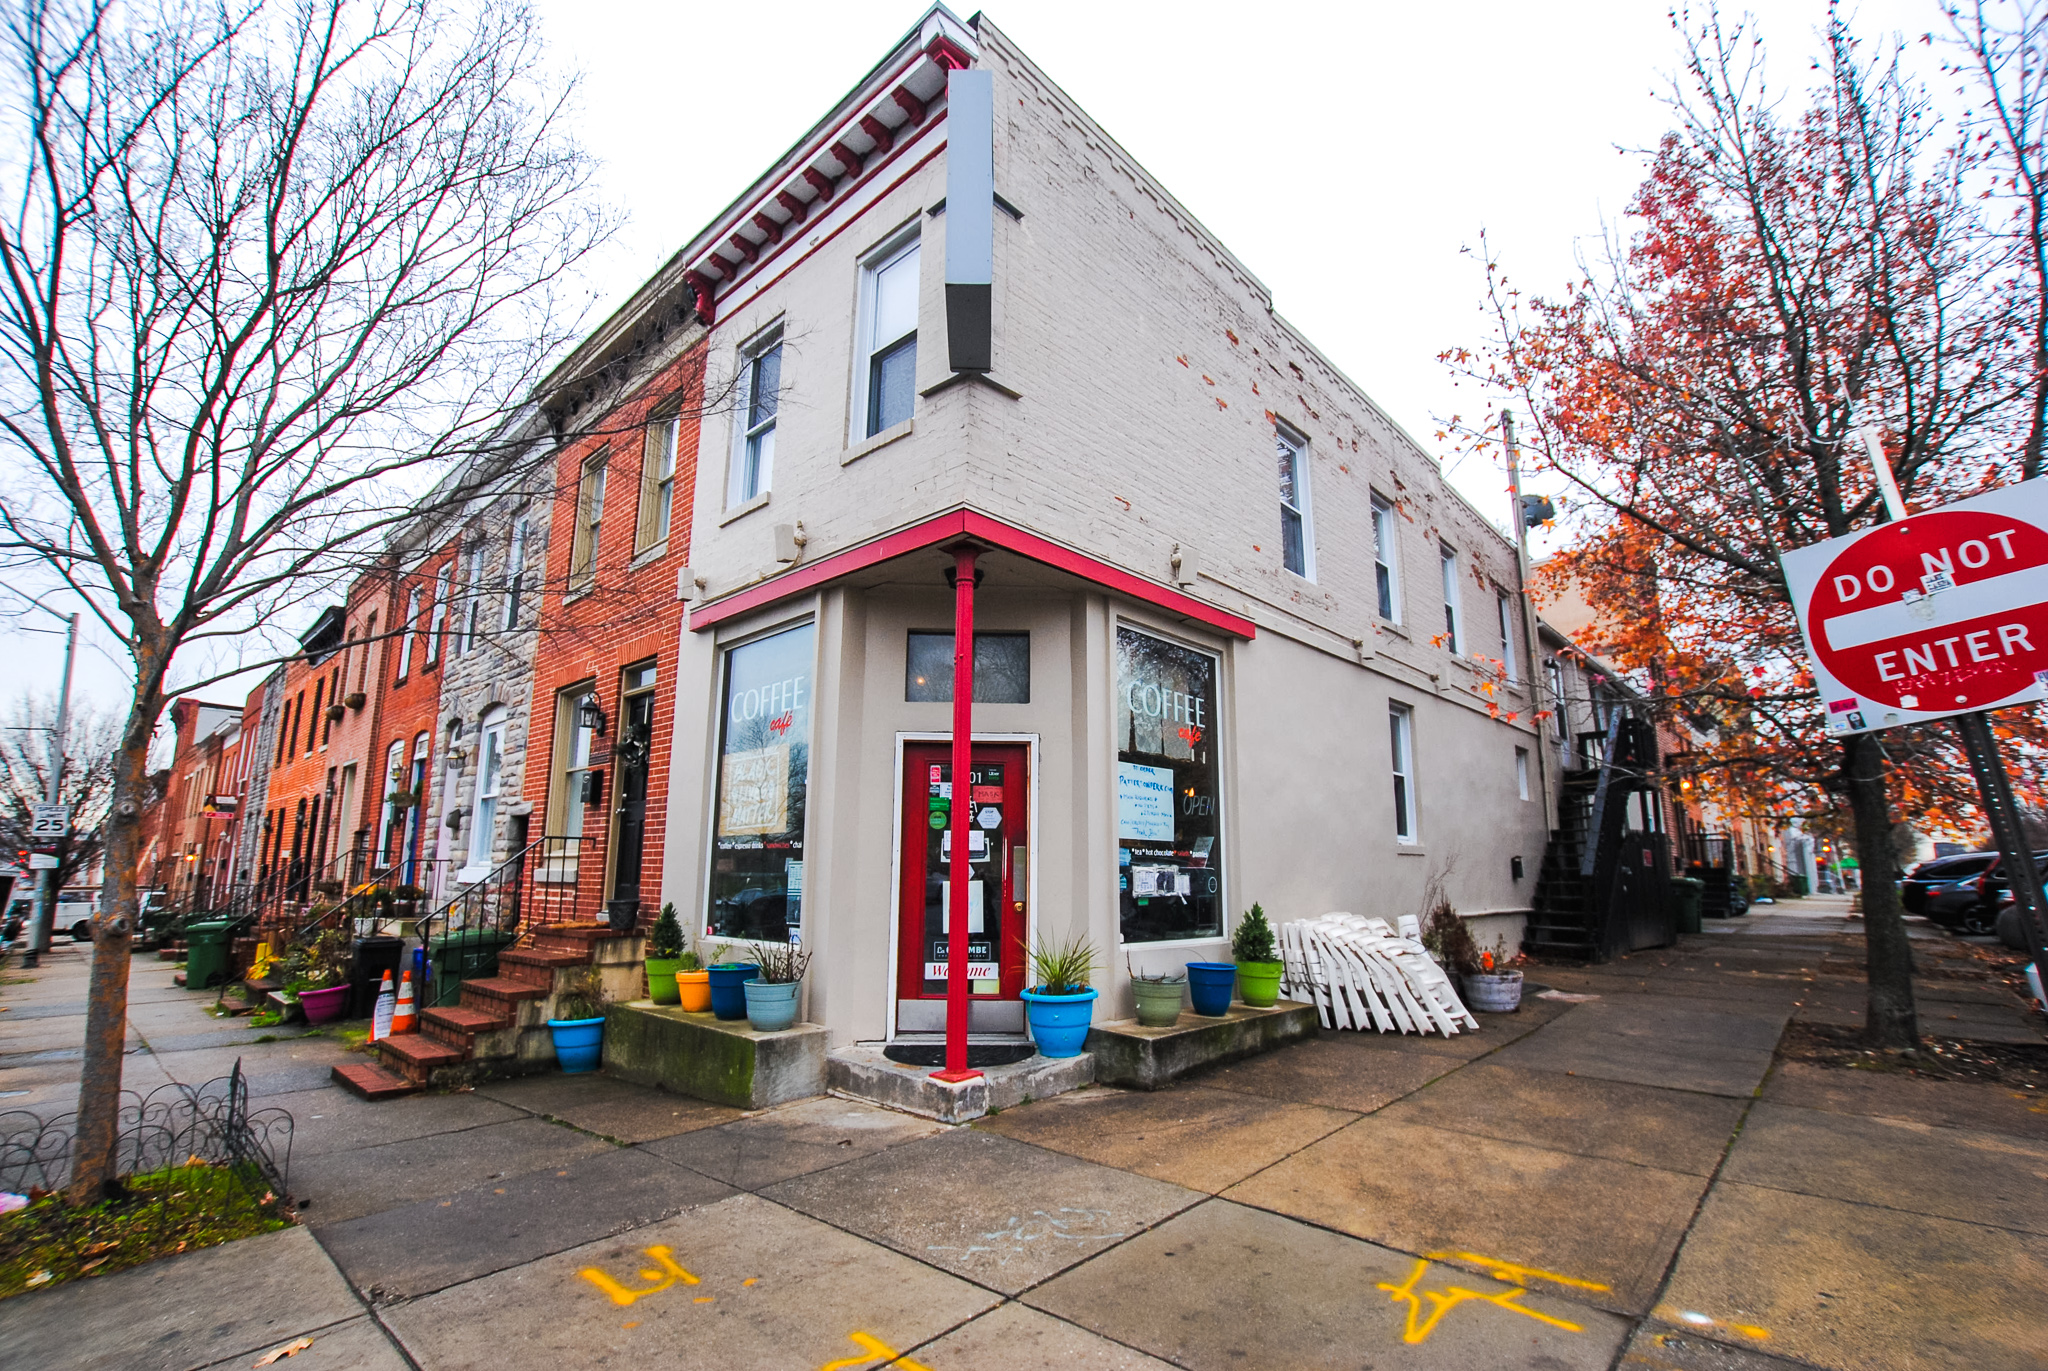 2501 Eastern Avenue: 2 Apartments / 1 Retail Store in Canton, Fully Leased